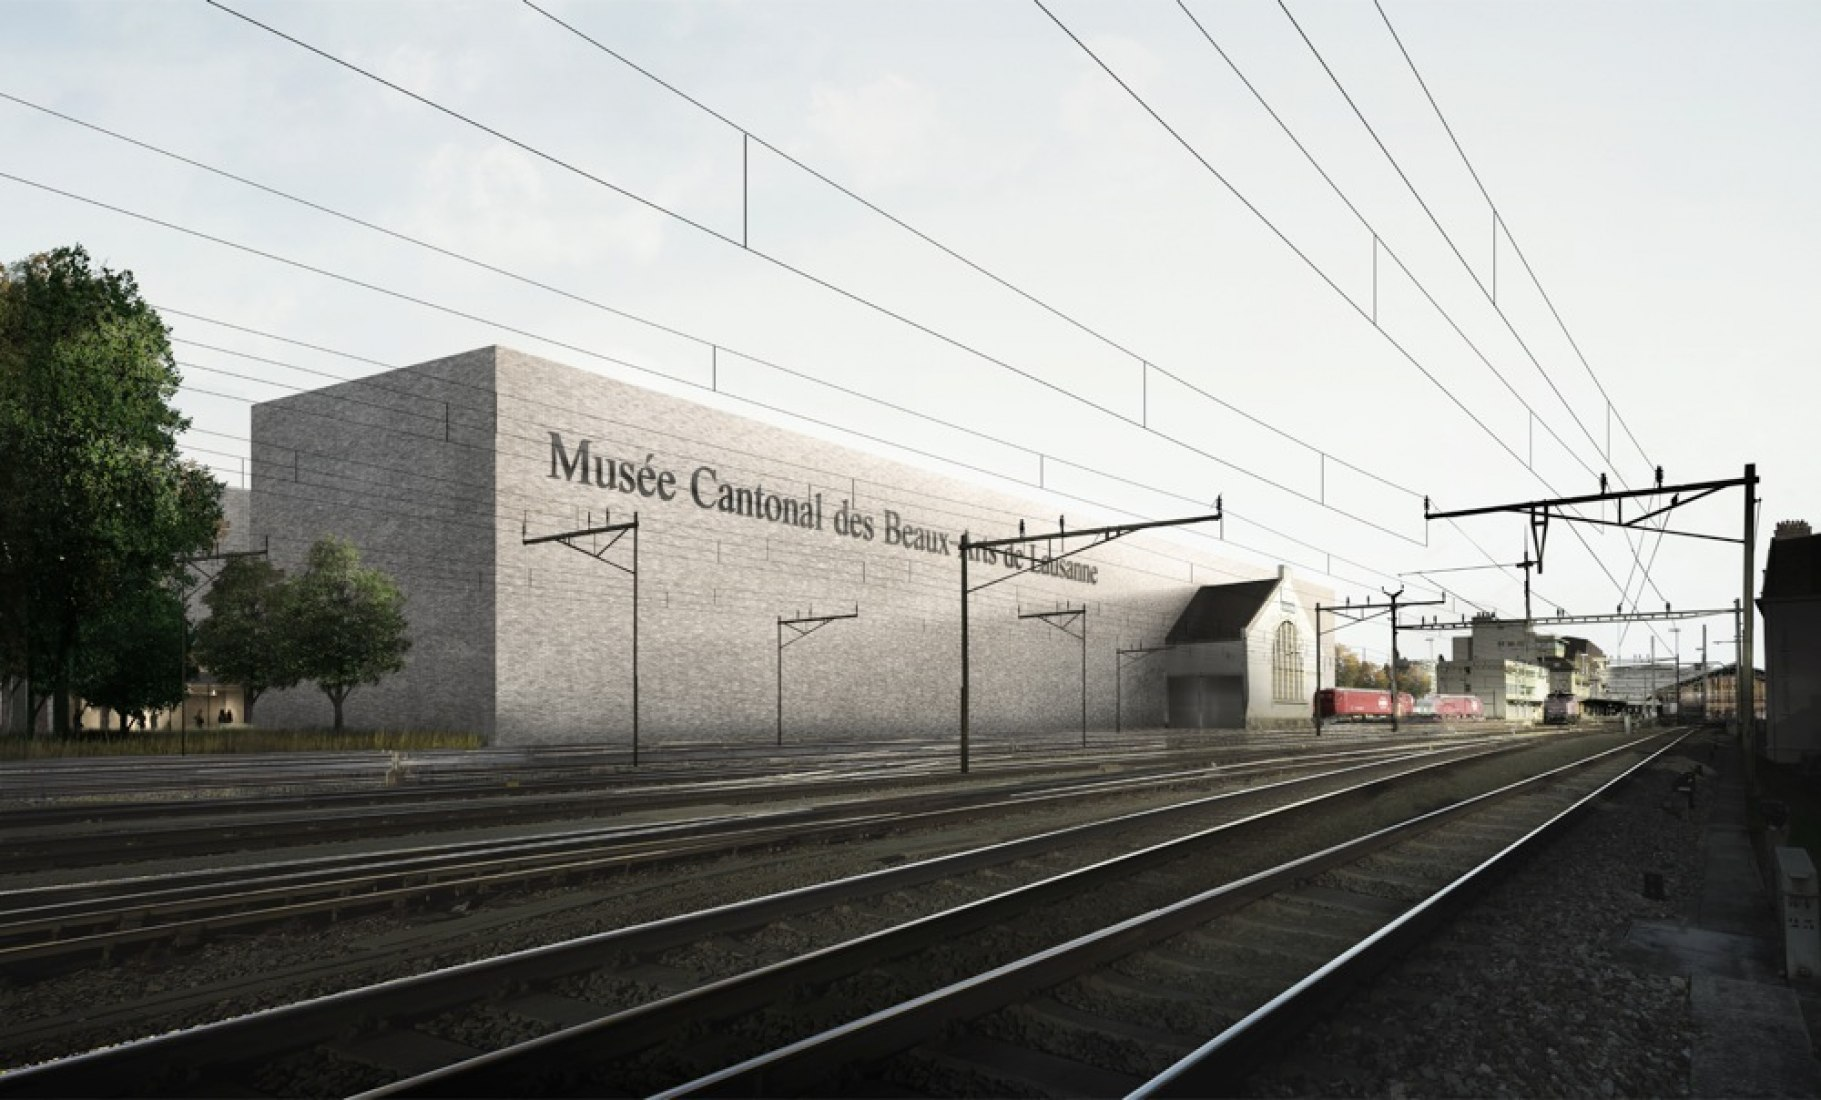 Exterior picture. Musée des Beaux-Arts at Lausana by EBV. Image courtesy of EBV.